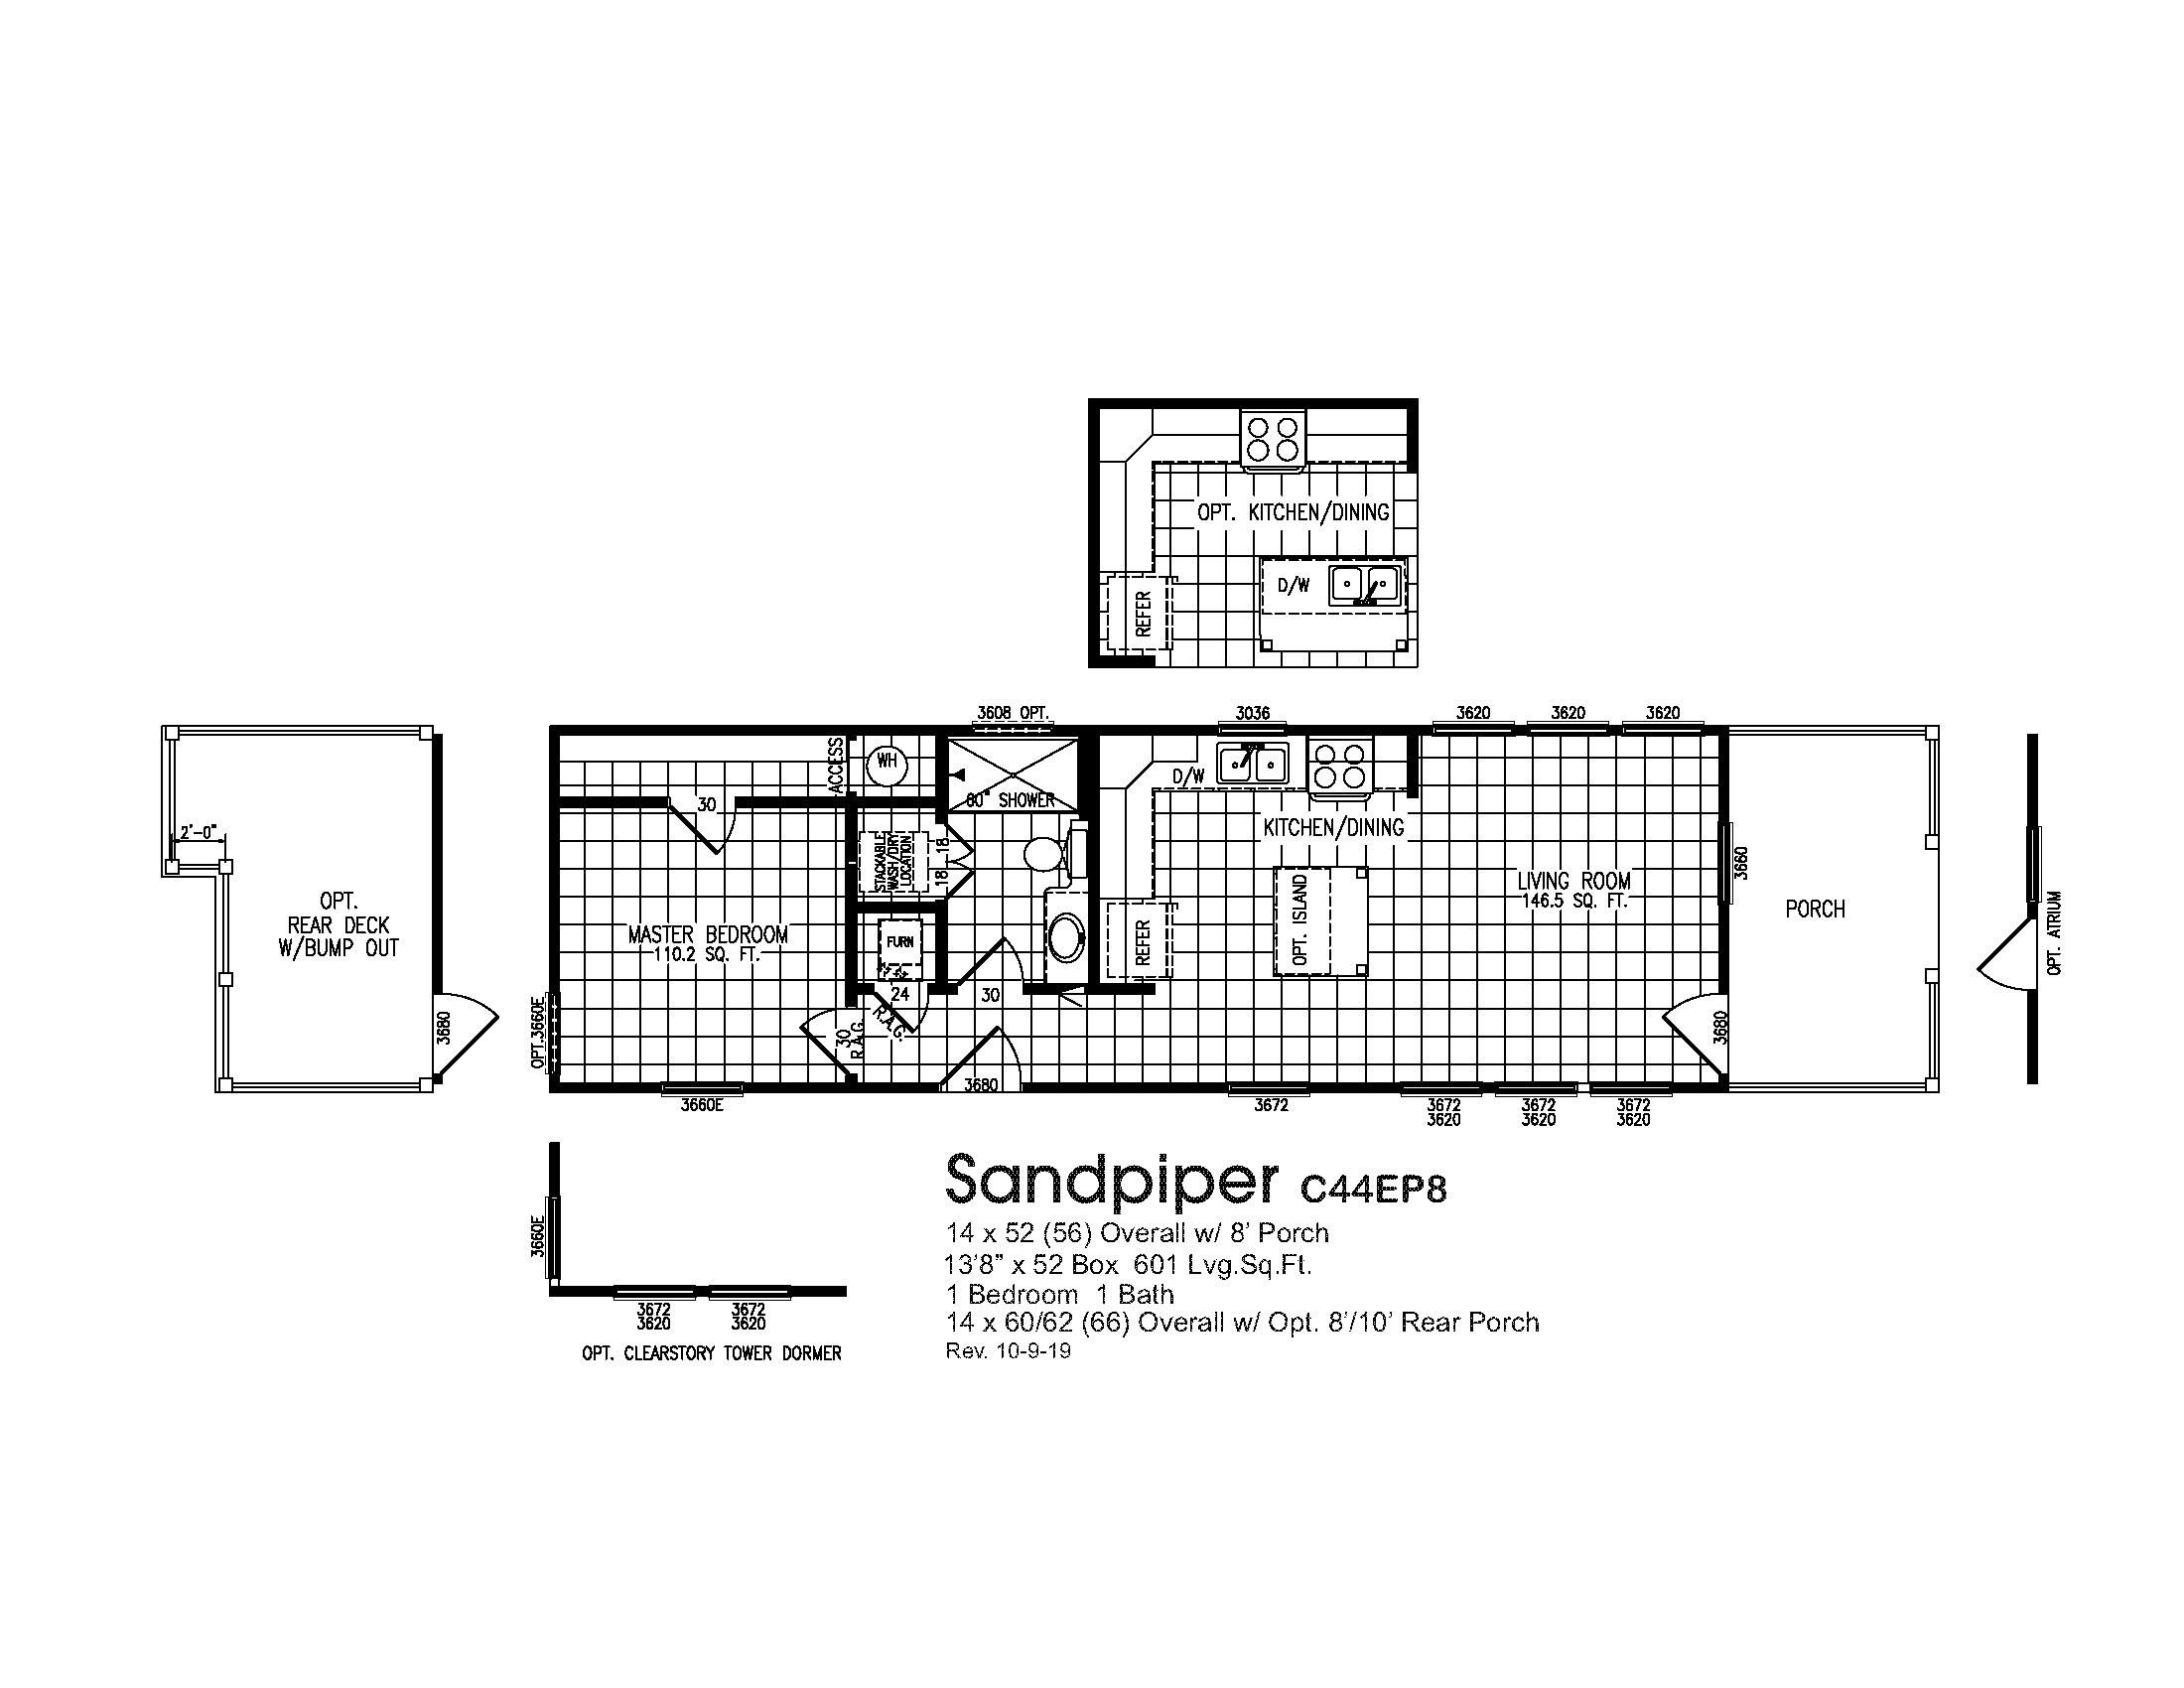 Smart Cottage Sandpiper C44EP8 Floorplan